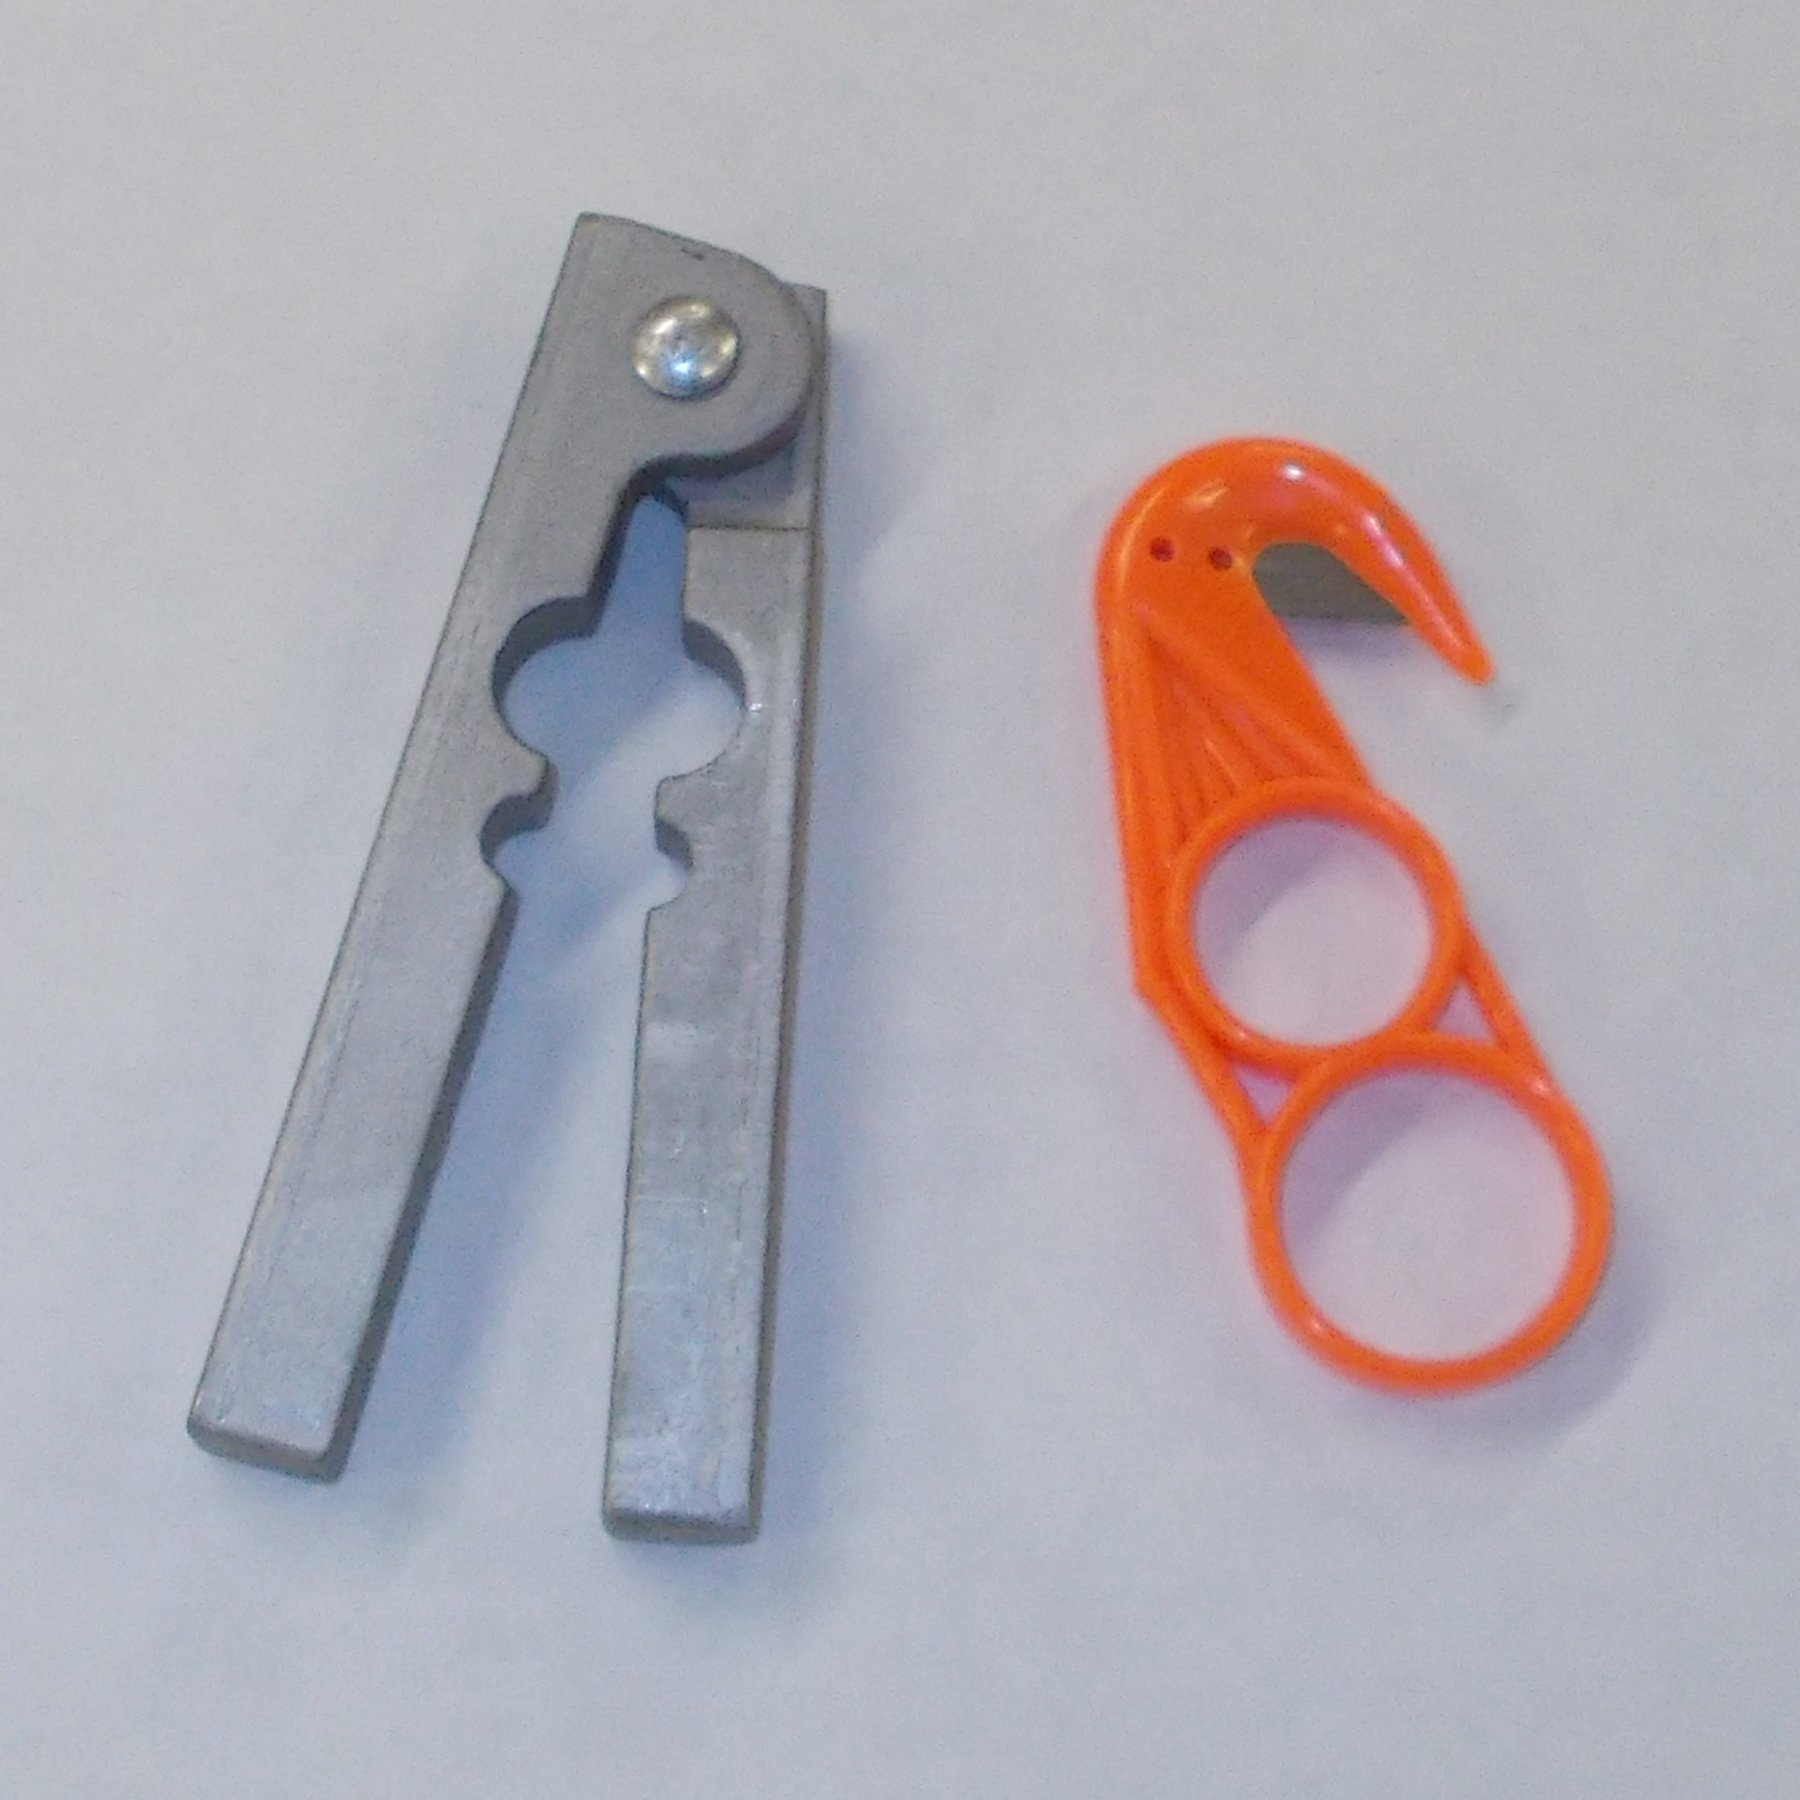 DakotaLine Aluminum Tail Stripper & Plastic Zipper by DakotaLine